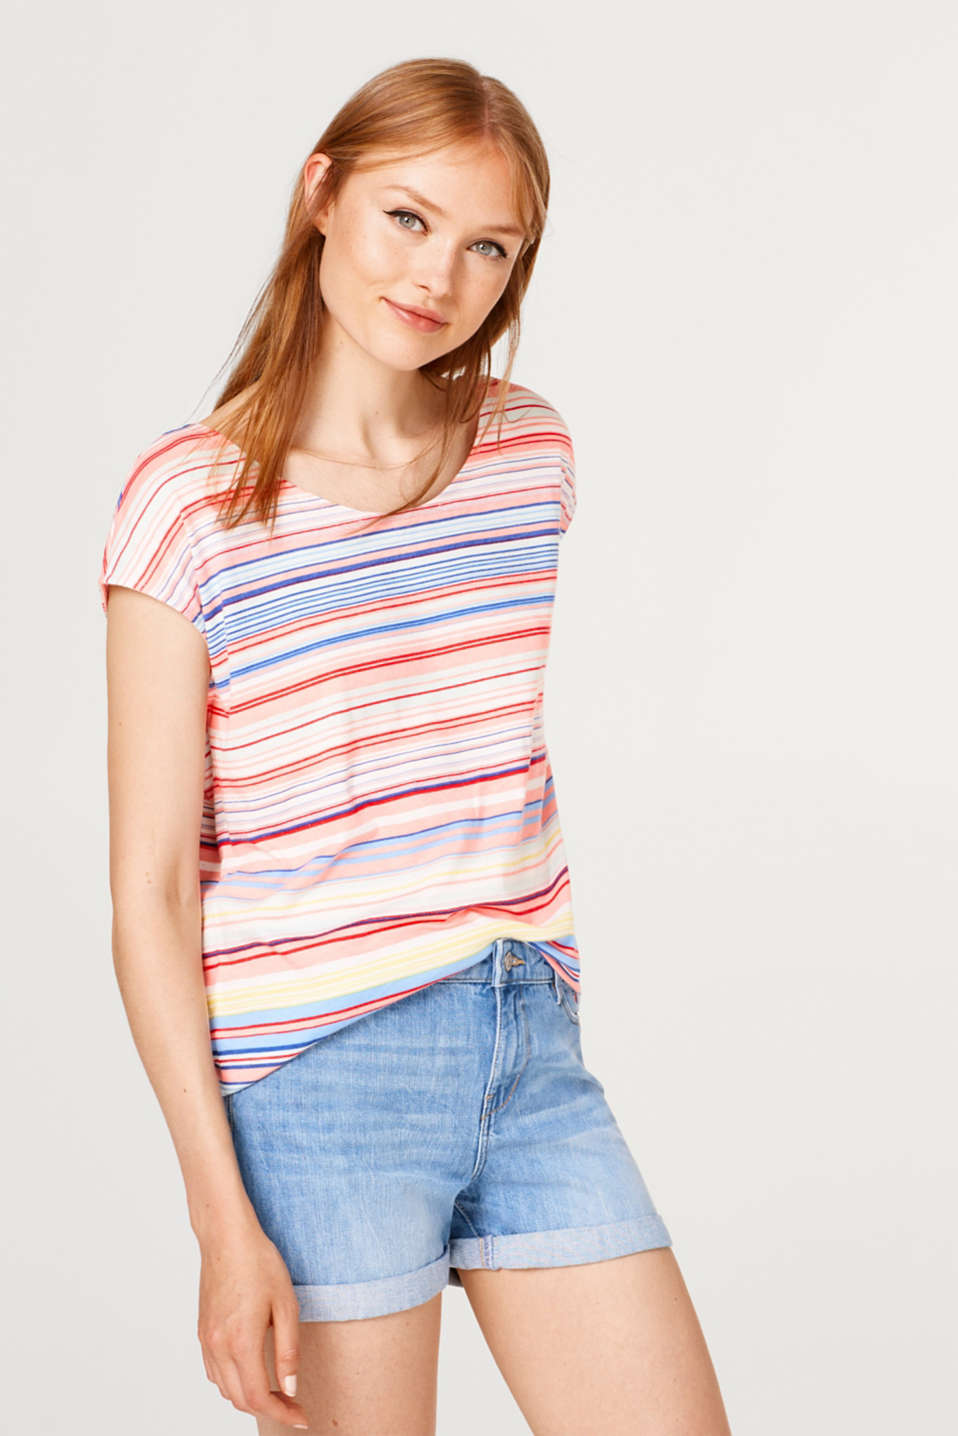 edc - Top in a striped look with bow details